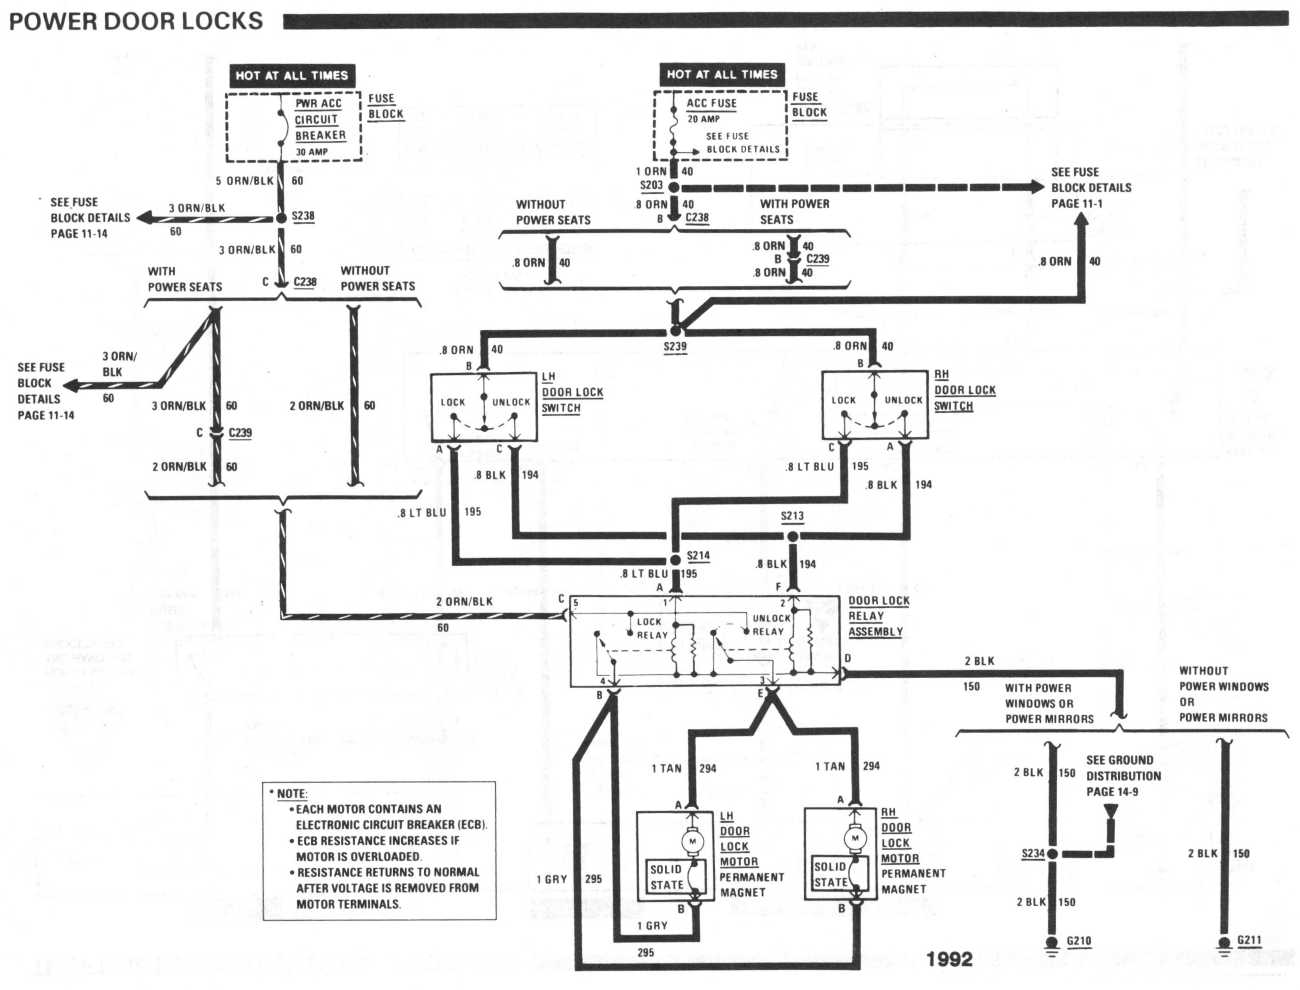 1995 ford pick up power door lock wiring wiring diagrams cheap 95 Blazer Wiring Diagram